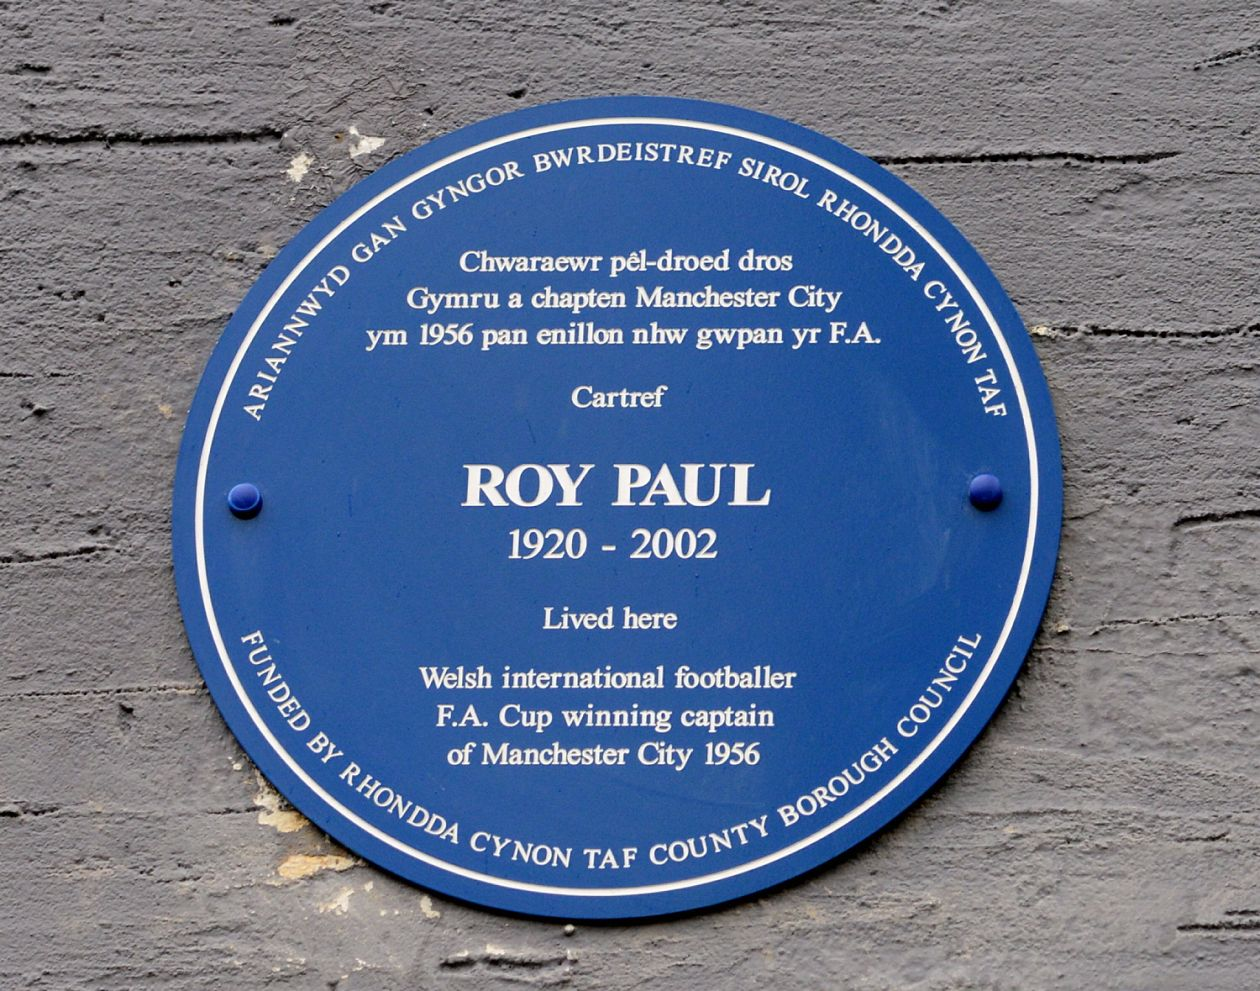 Roy Paul honoured by Blue Plaque